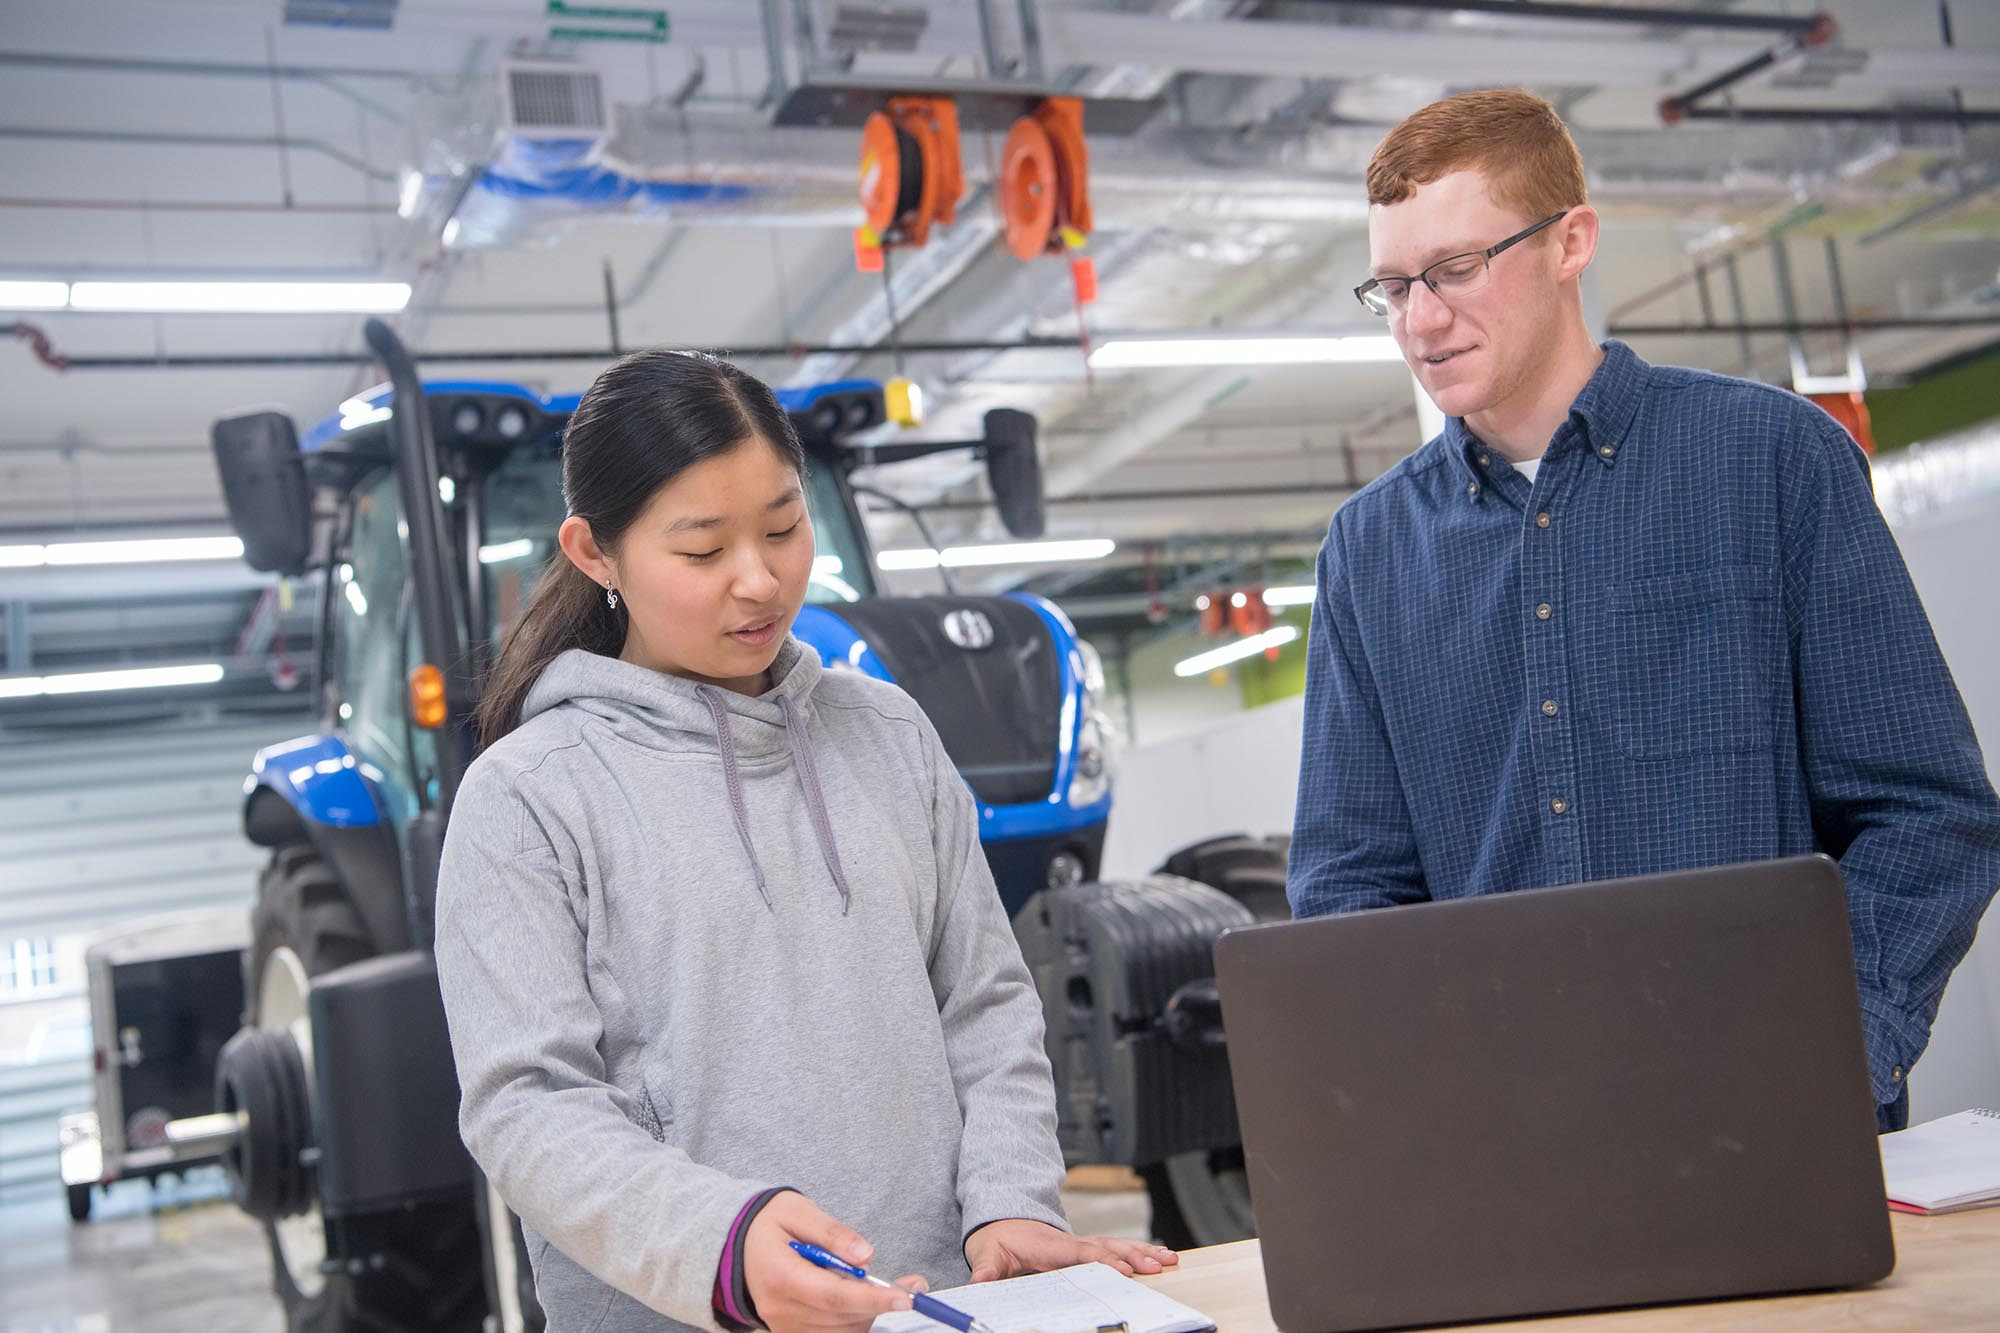 Penn State student and professor in front of agricultural machinery.